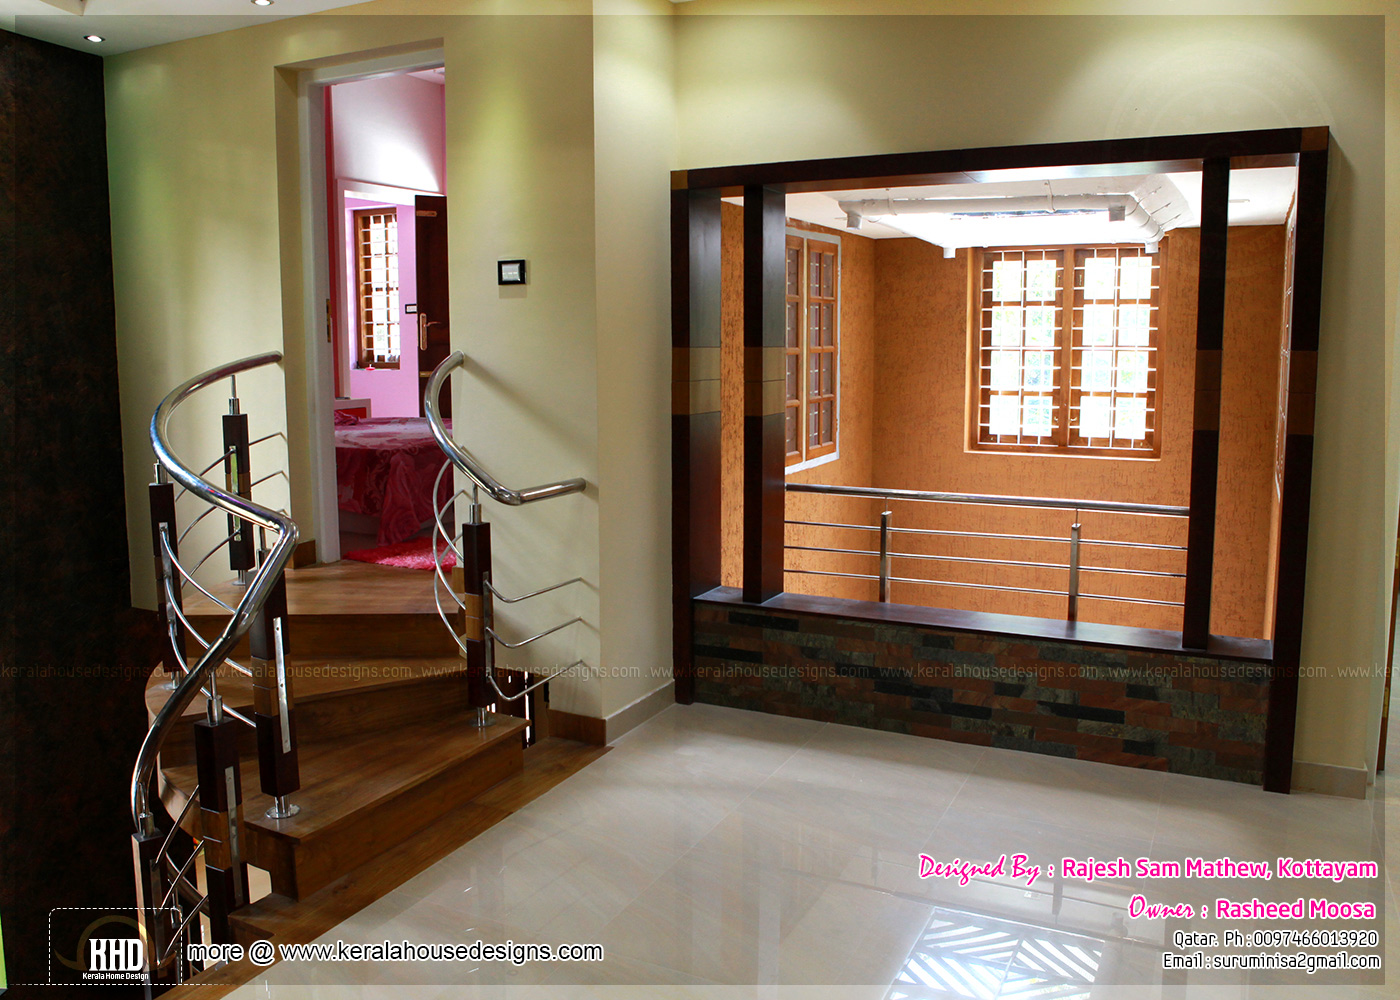 Kerala interior design with photos kerala home design and floor plans Home interior design ideas in chennai